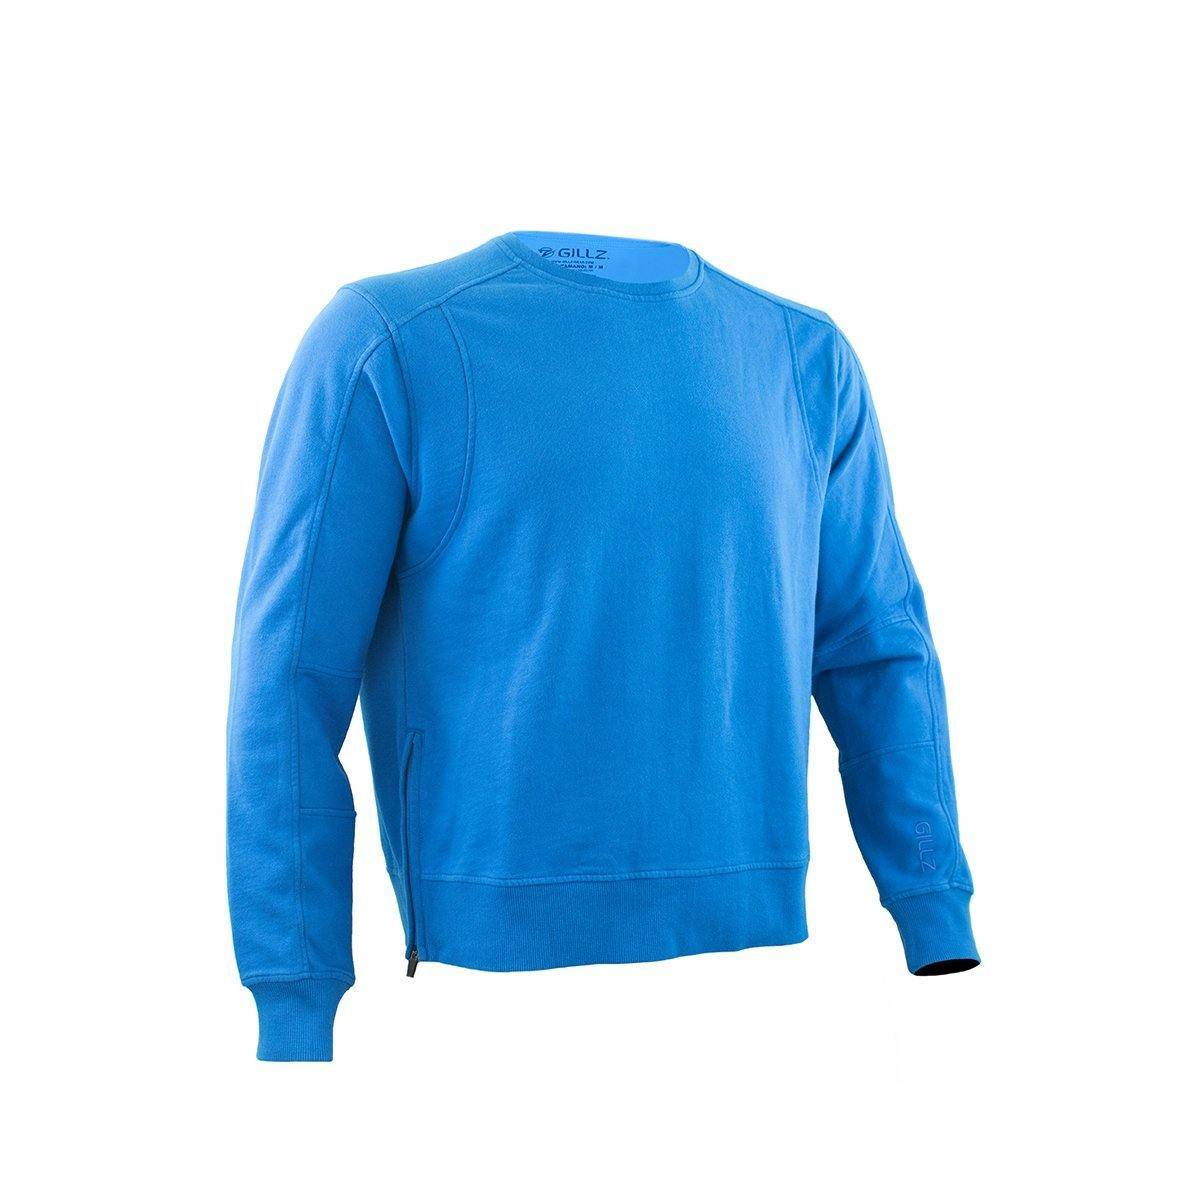 Saltwater Series Fleece - Gillz